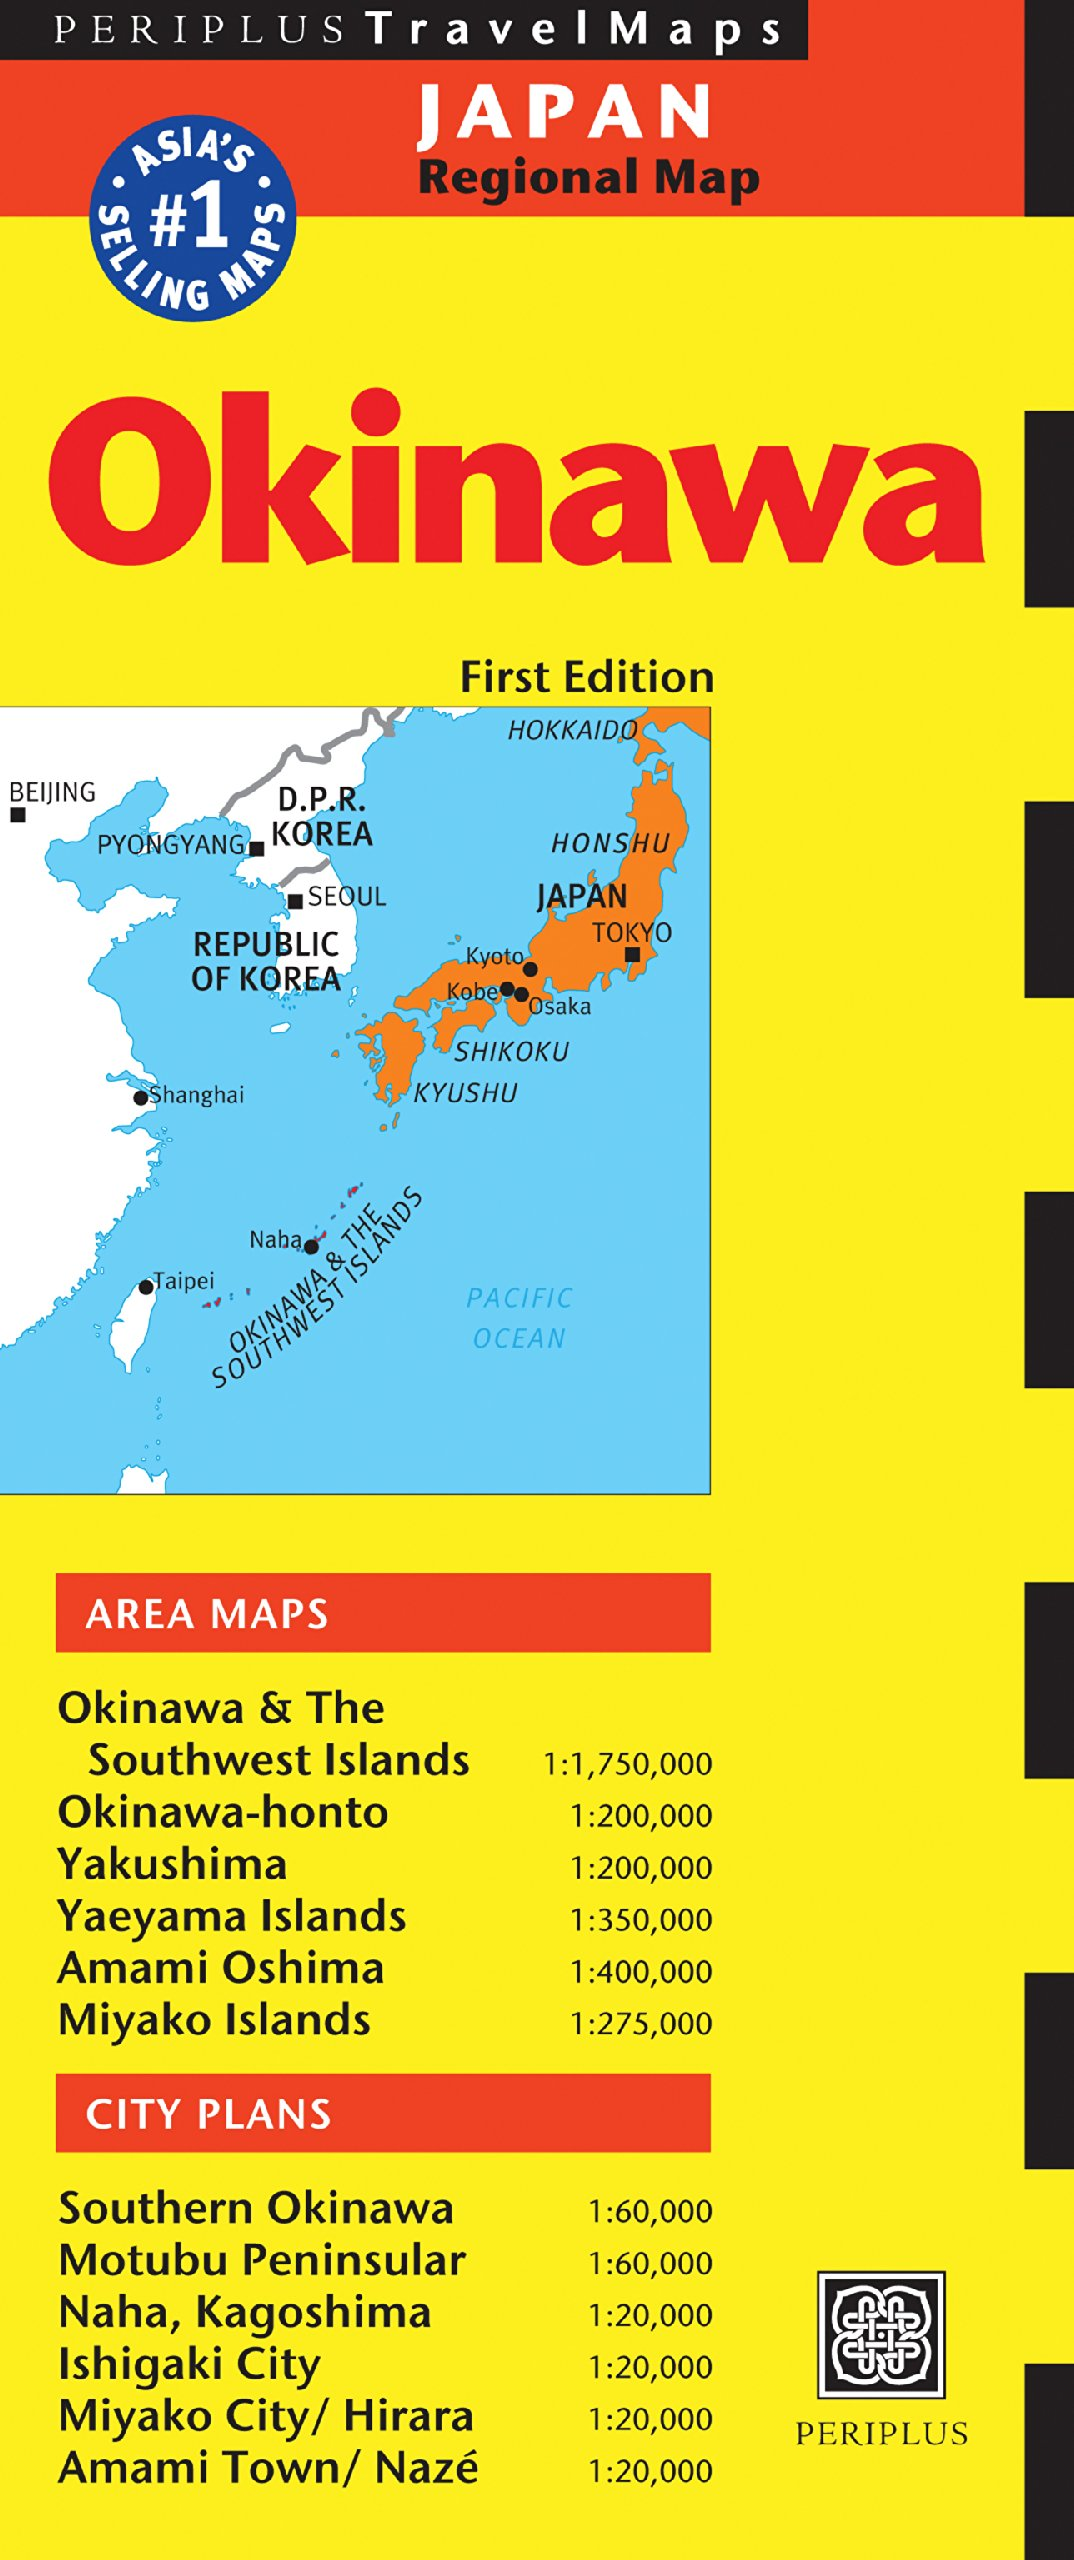 Okinawa Travel Map First Edition Periplus Travel Maps Periplus - Japan bilingual map 3rd edition